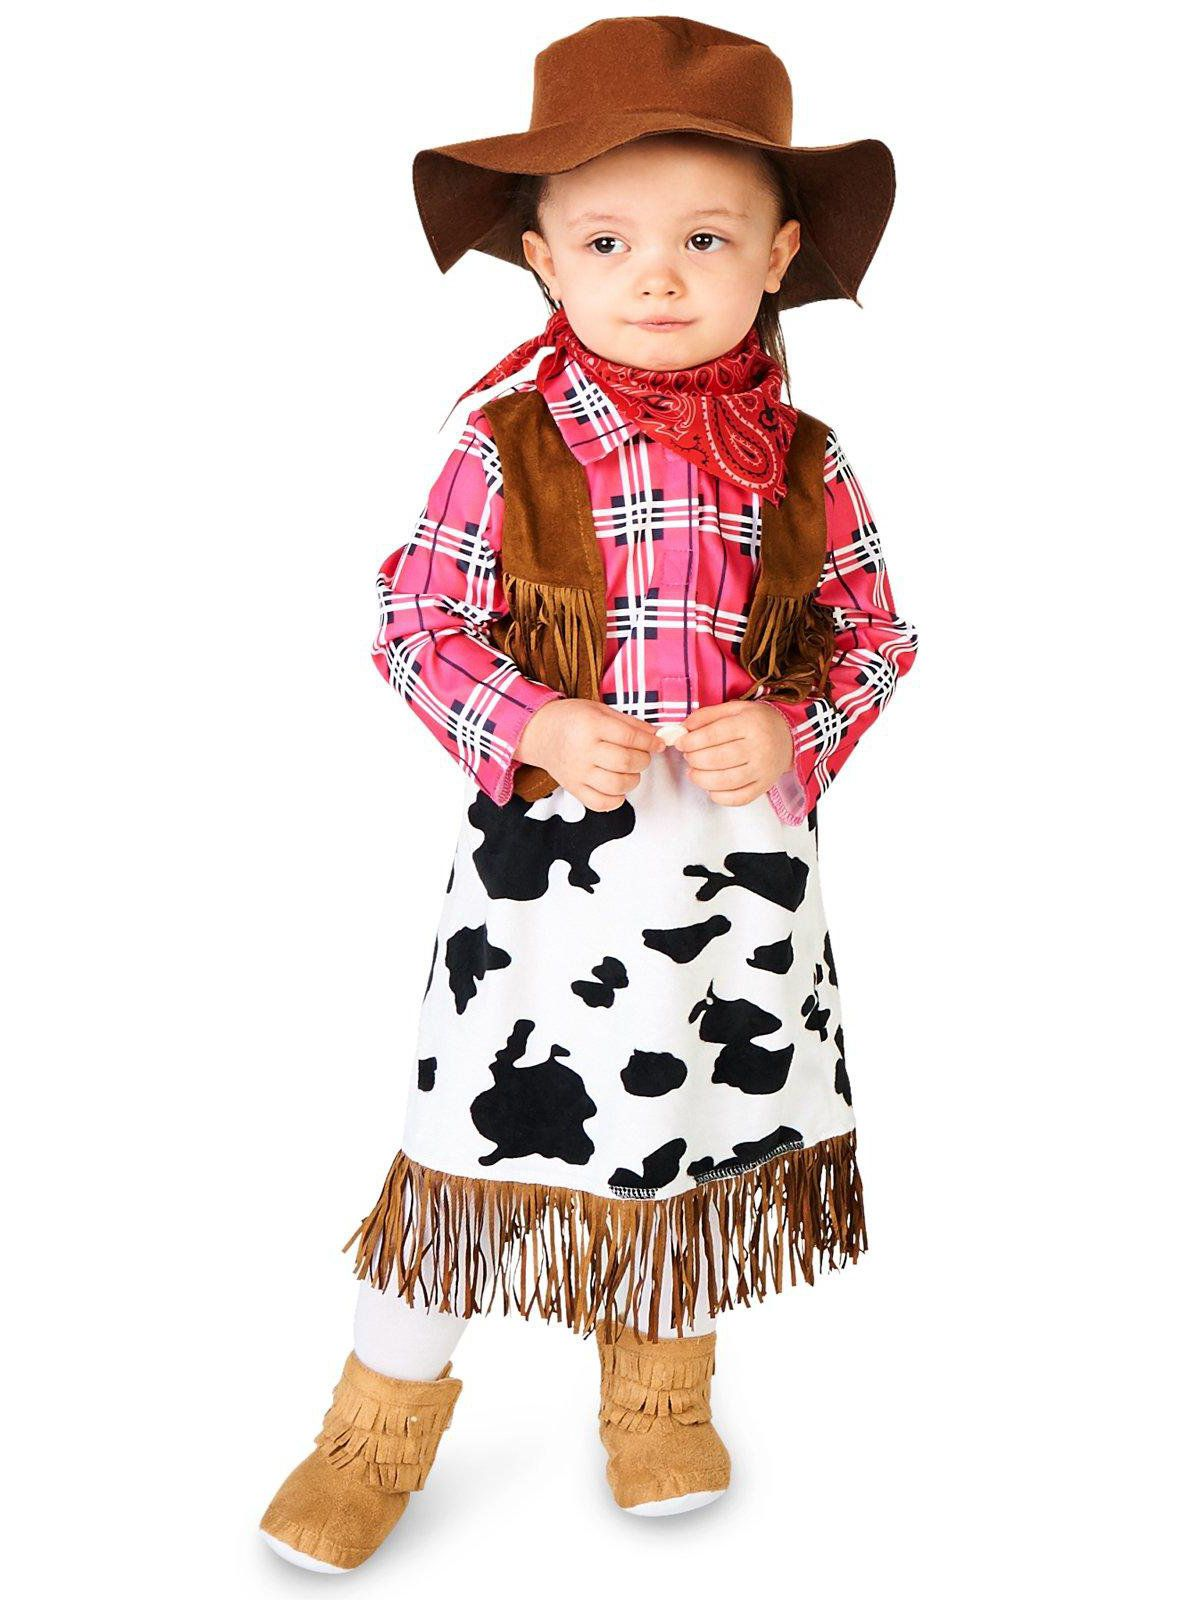 Baby Cowgirl Princess Costume For Babies  sc 1 st  Wholesale Halloween Costumes & Baby Cowgirl Princess Costume For Babies   Wholesale Halloween Costumes